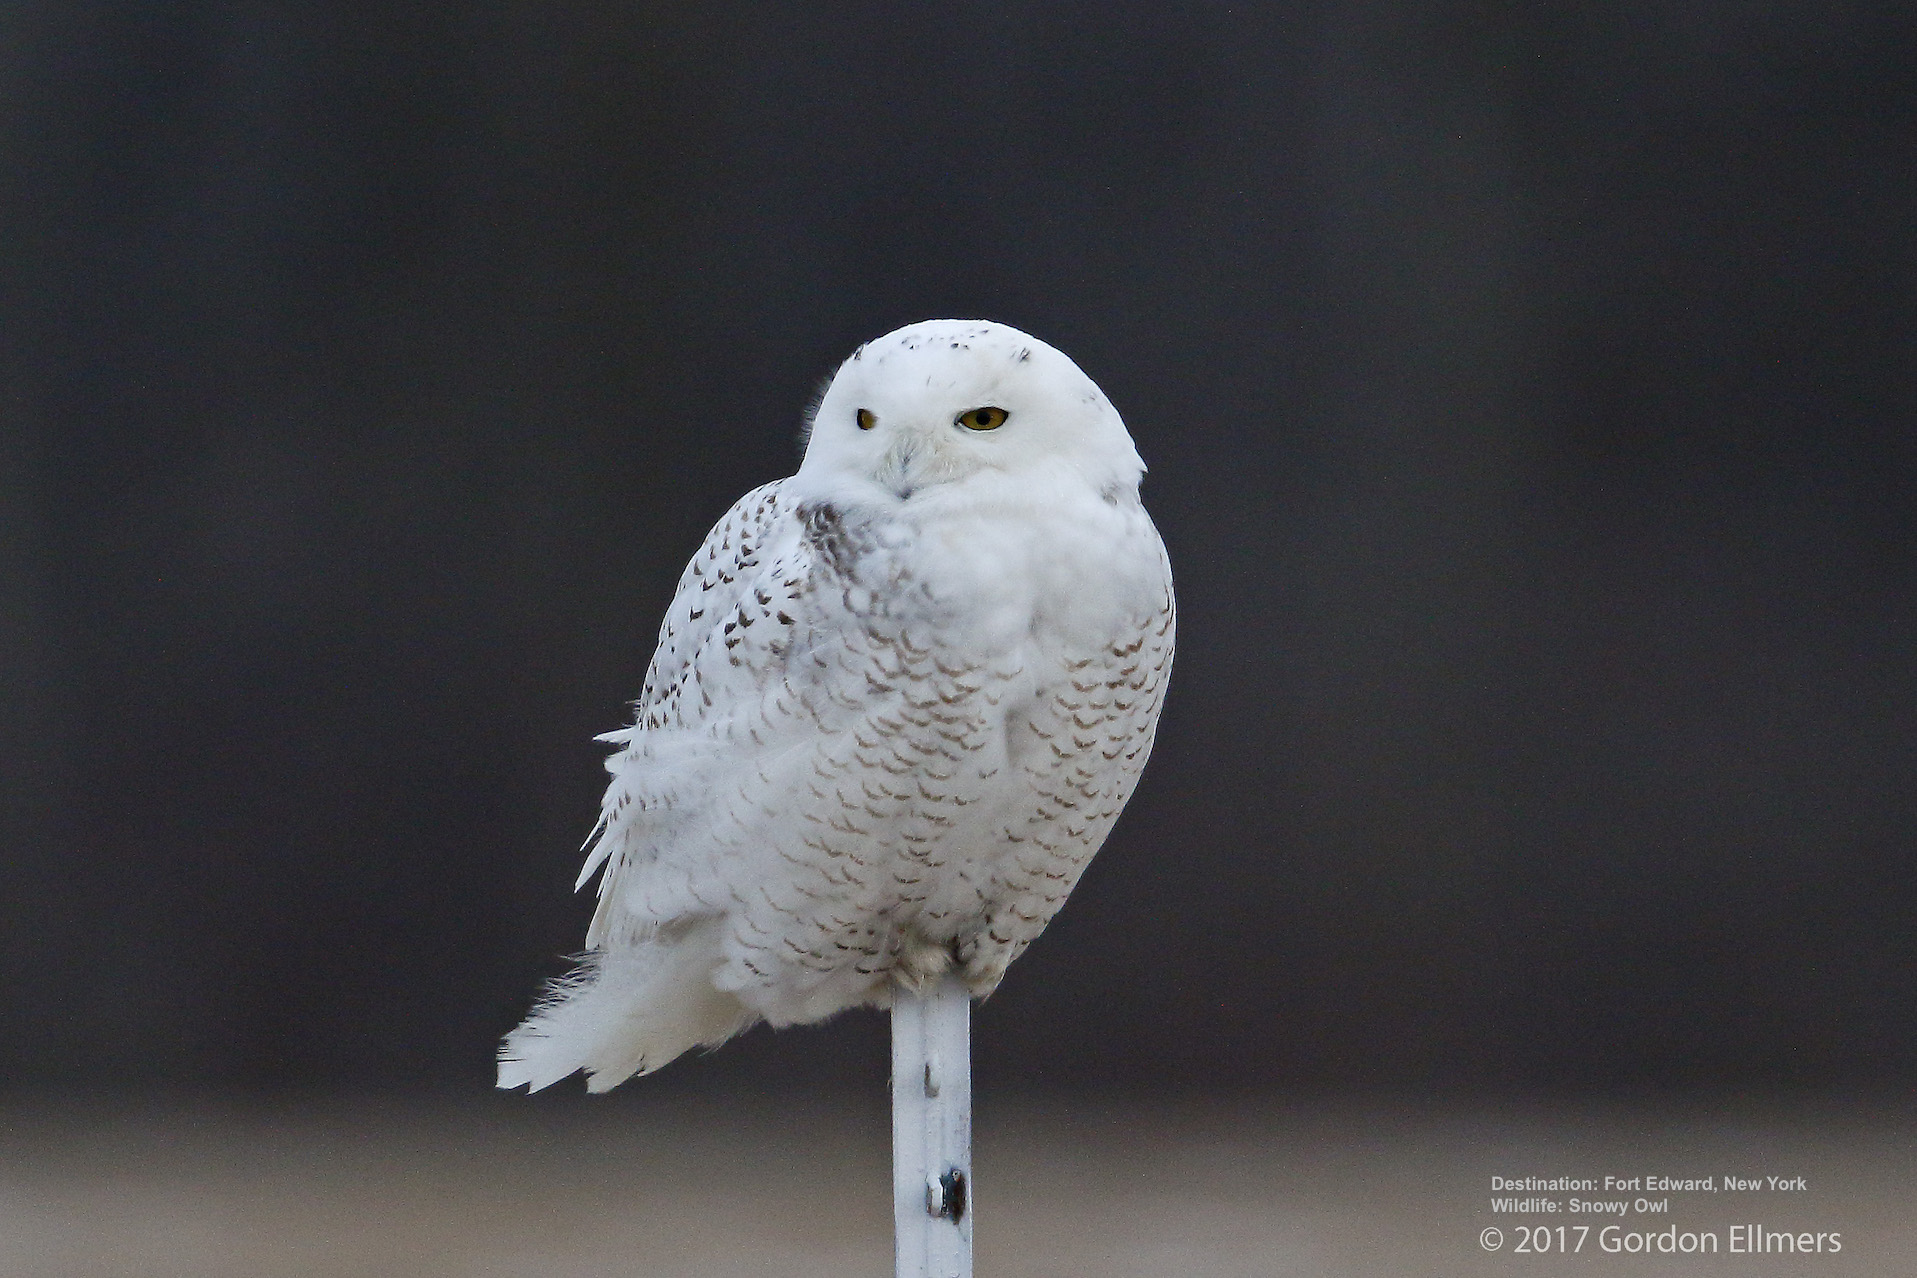 SNOWIES SPEN A LOT OF TIME ON THE GROUND, BUT YOU CAN ALSO FIND THEM PERCHING ON FENCE POSTS OR ON THIS STICK. IMAGE: GORDON ELLMERS